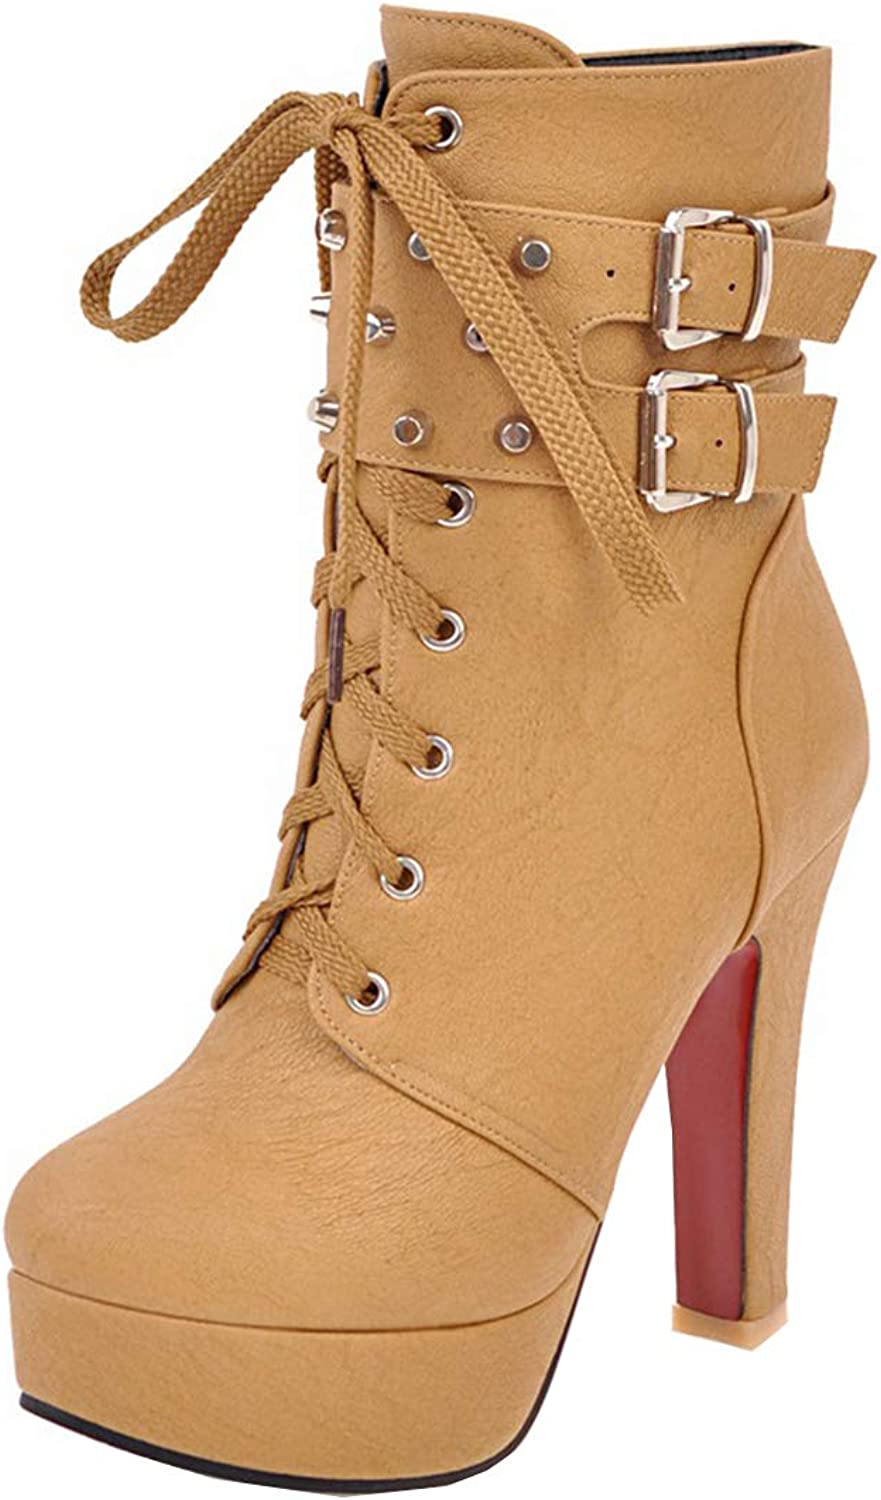 Vitalo Womens Studded High Heel Lace Up Platform Ankle Boots Buckles Autumn Winter shoes